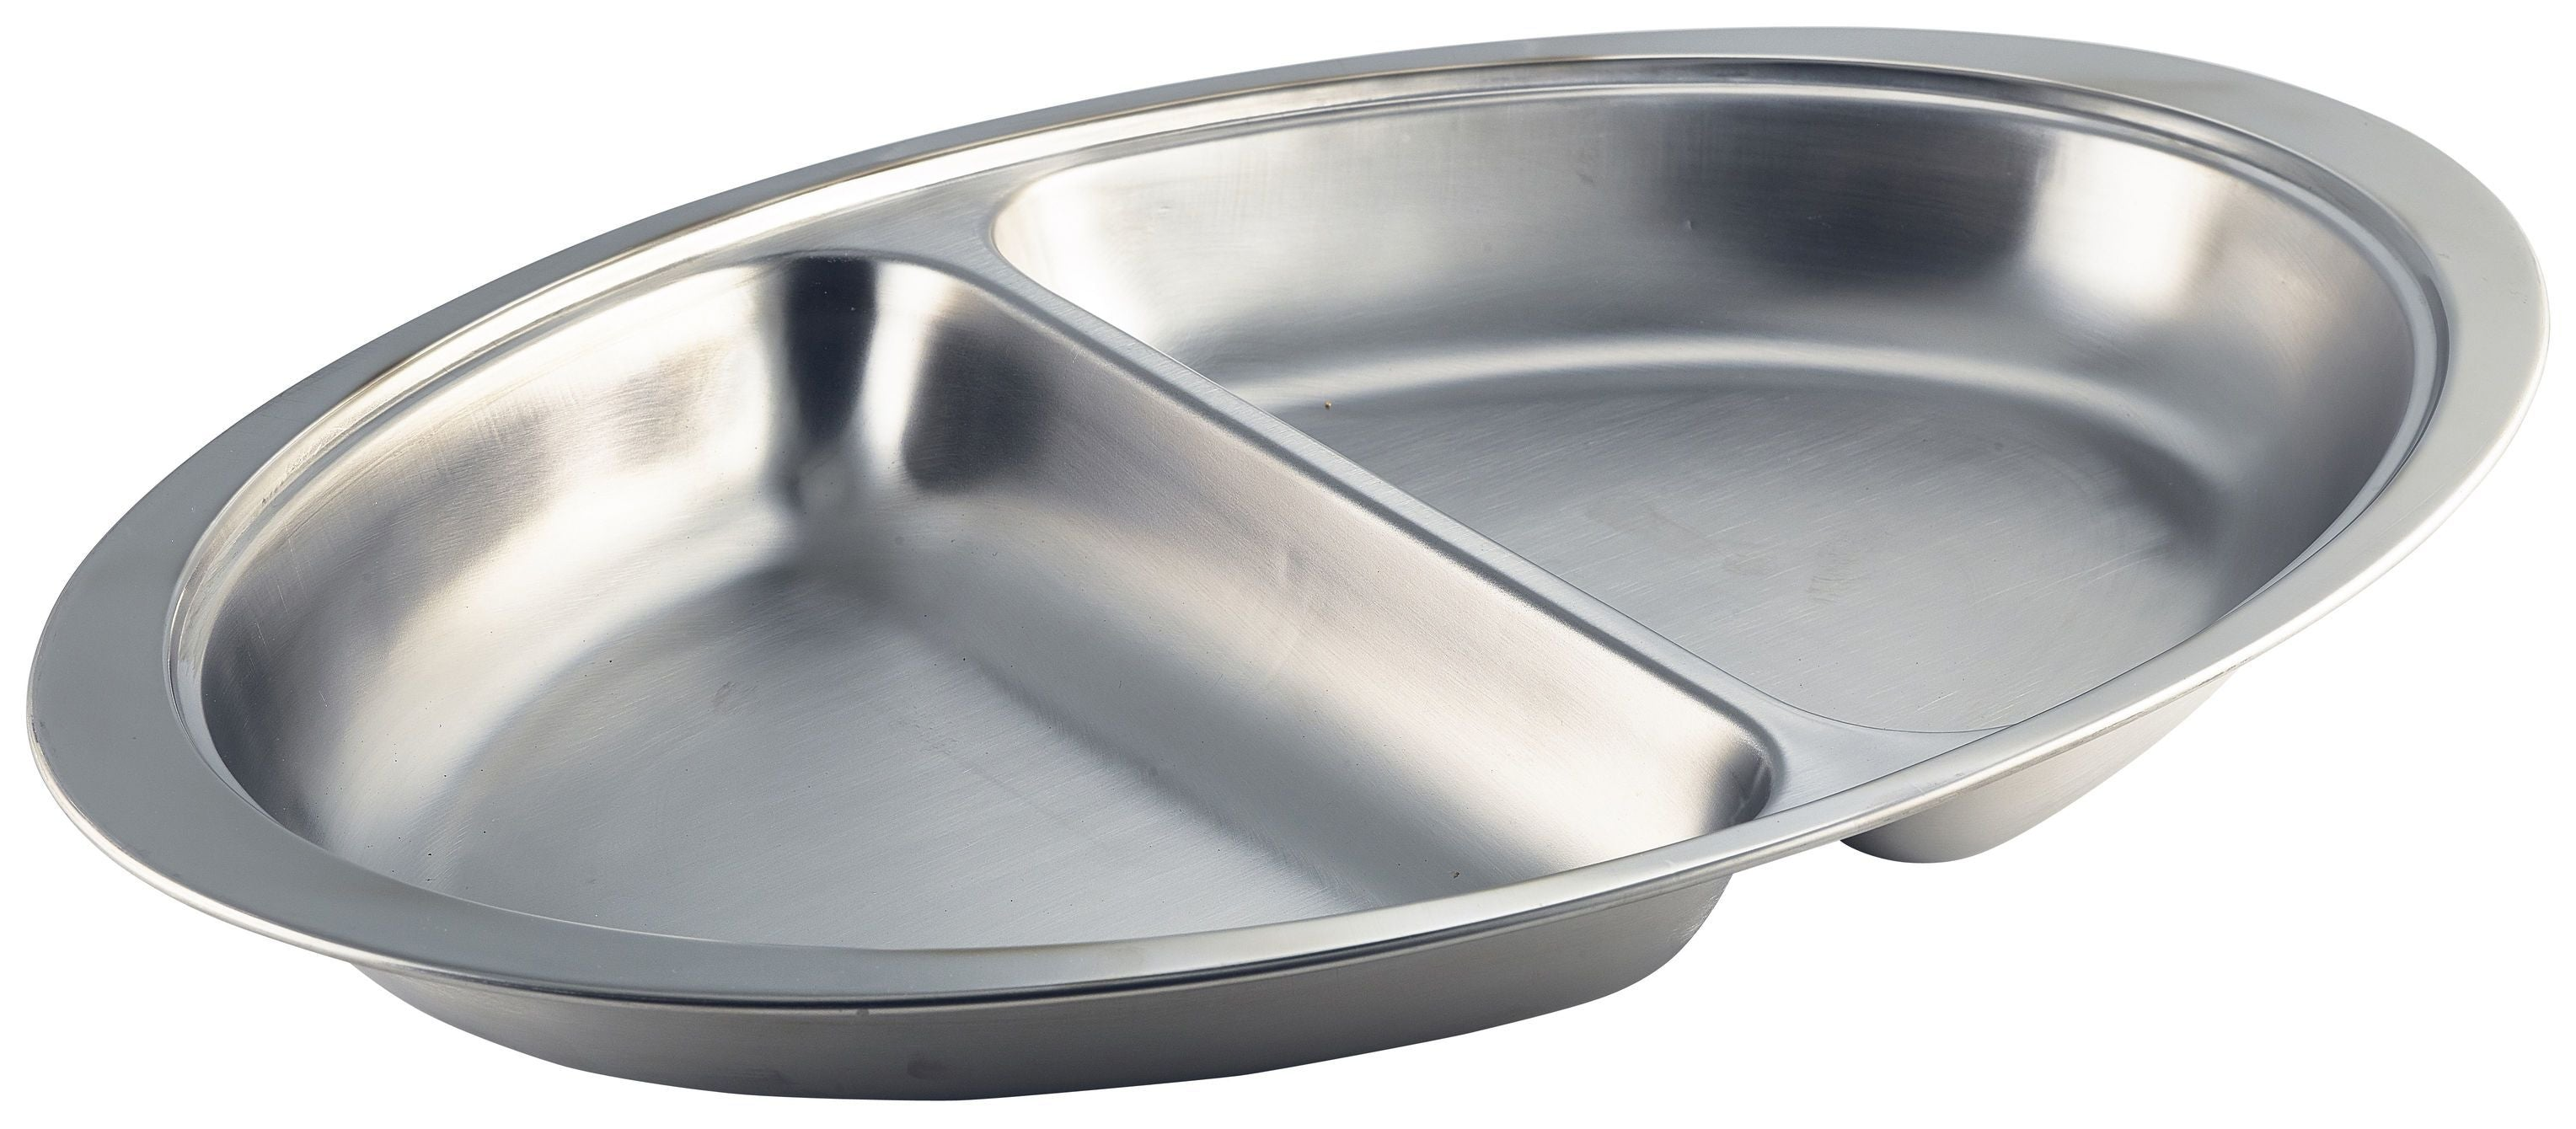 GenWare Stainless Steel Two Division Oval Banqueting Dish 50cm/20""